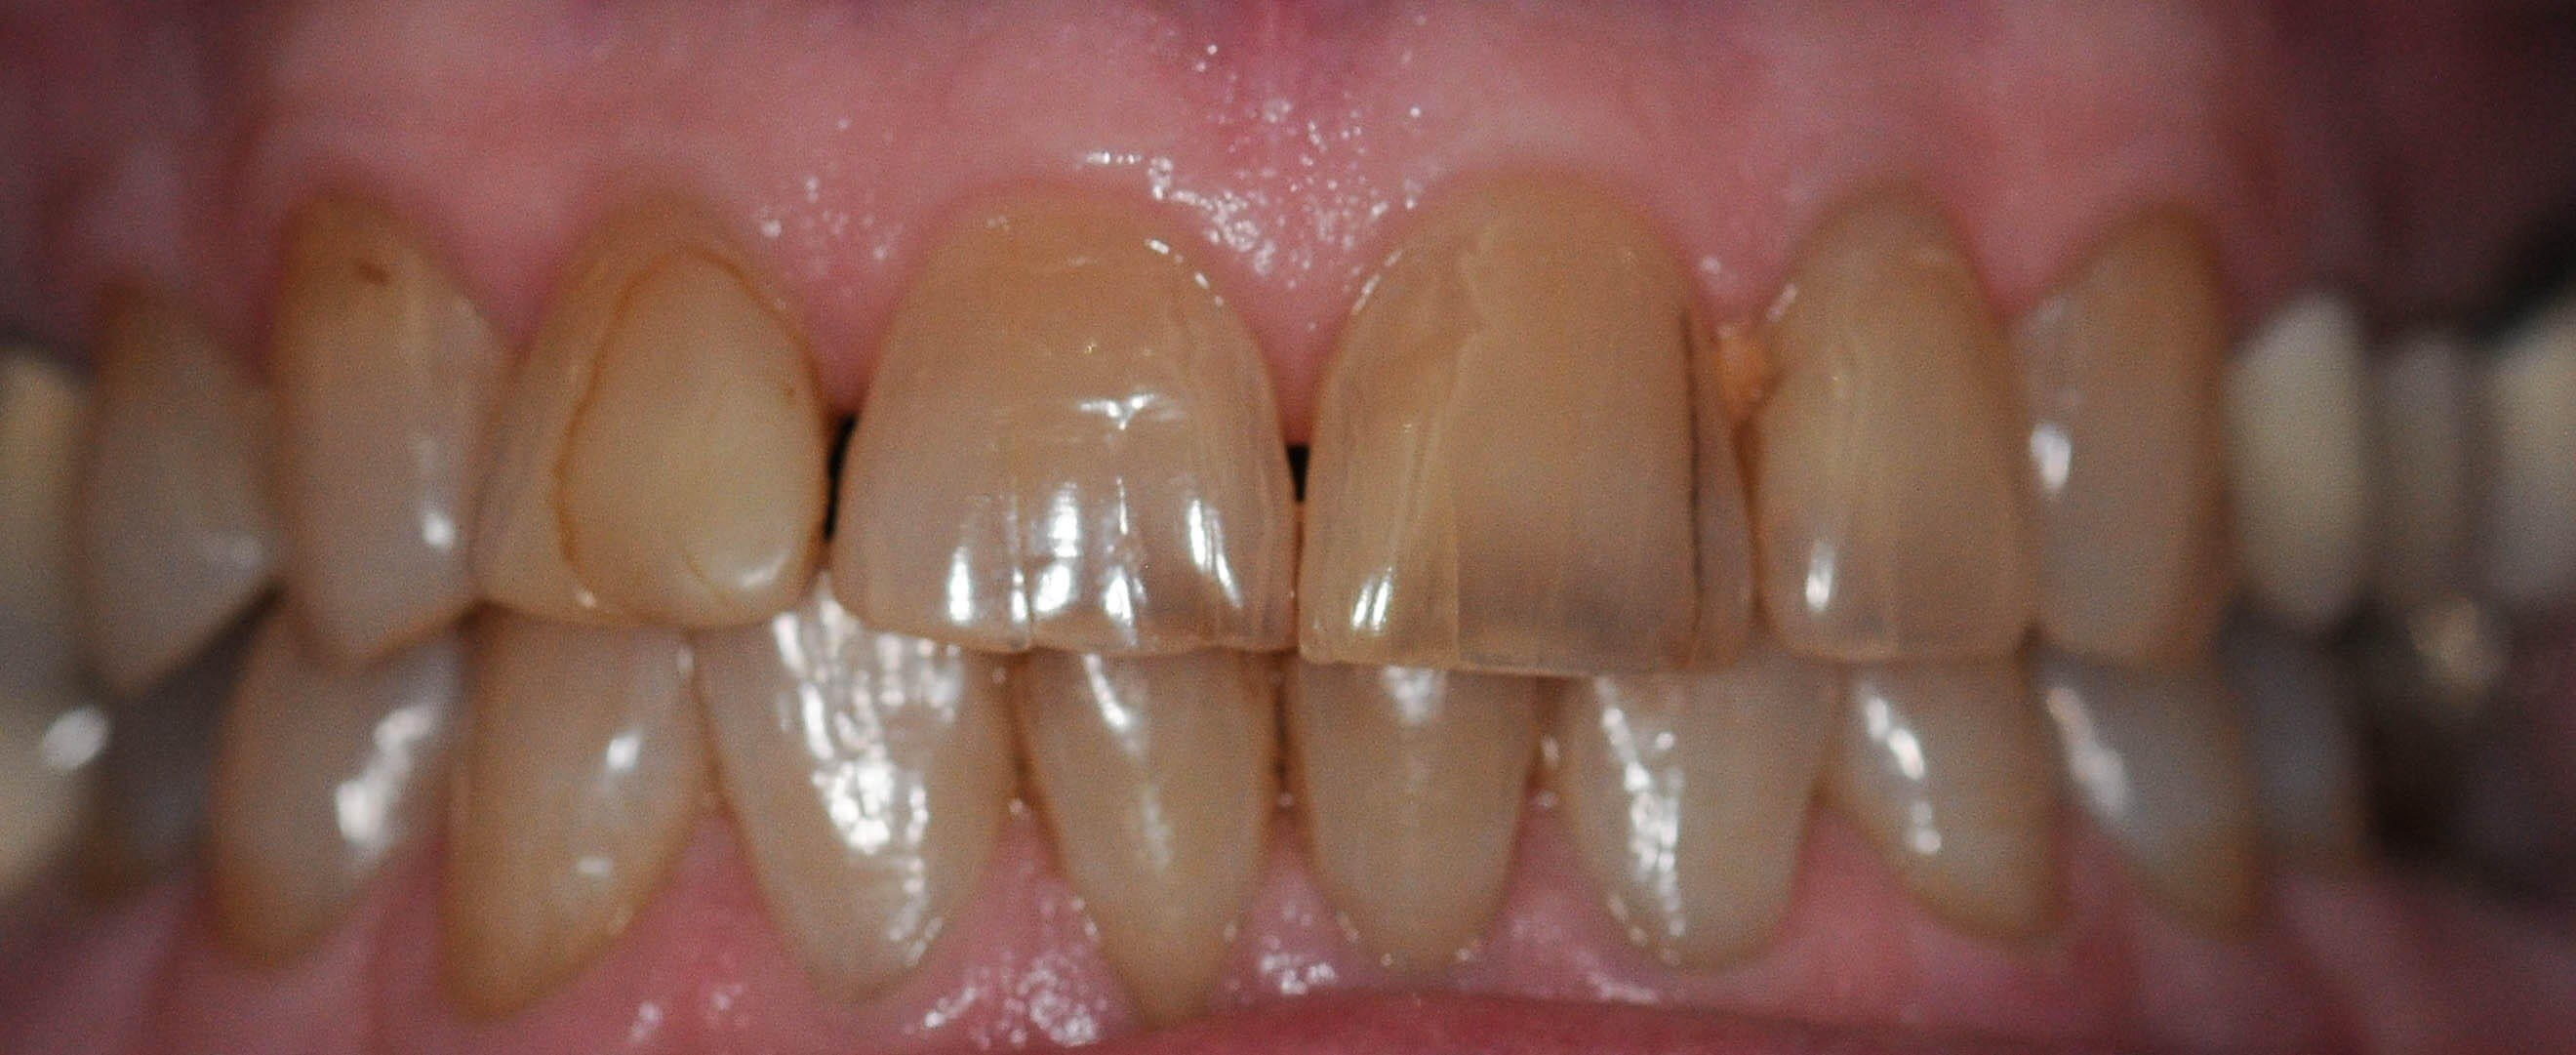 Before and After Whitening Before